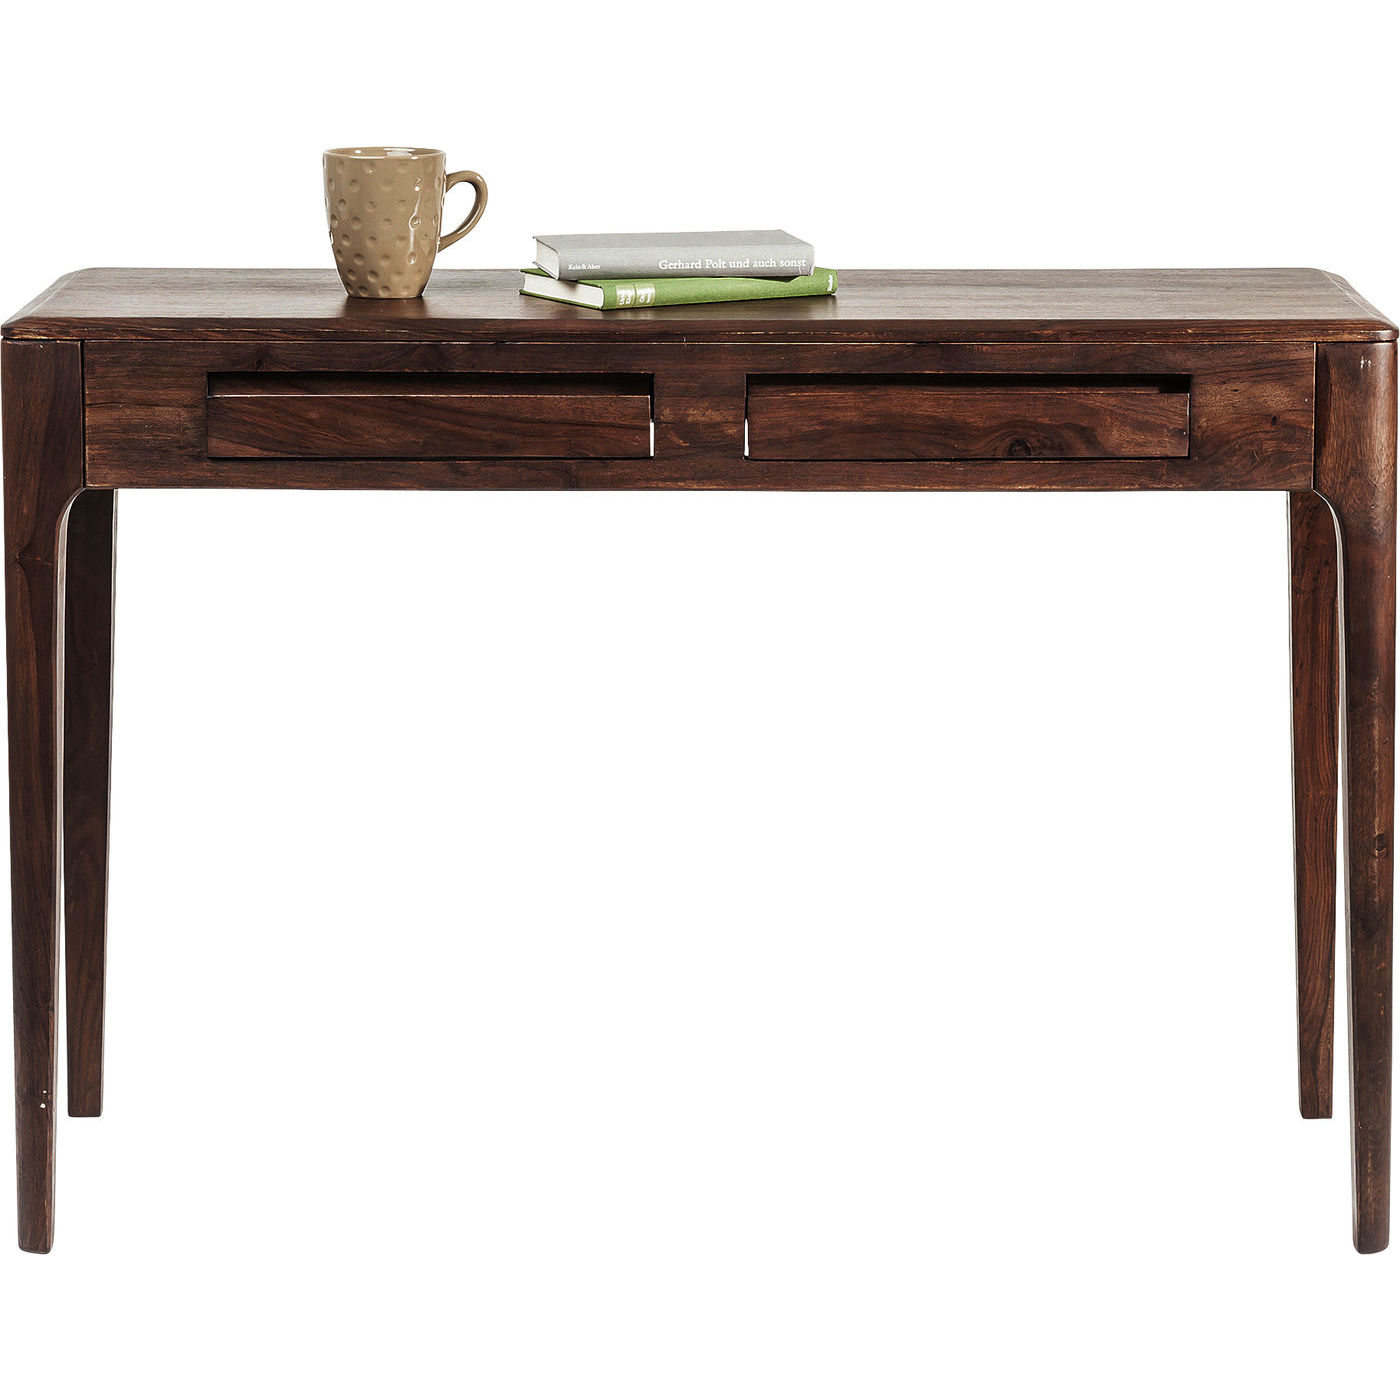 Image of   KARE DESIGN Brooklyn Walnut Konsolbord